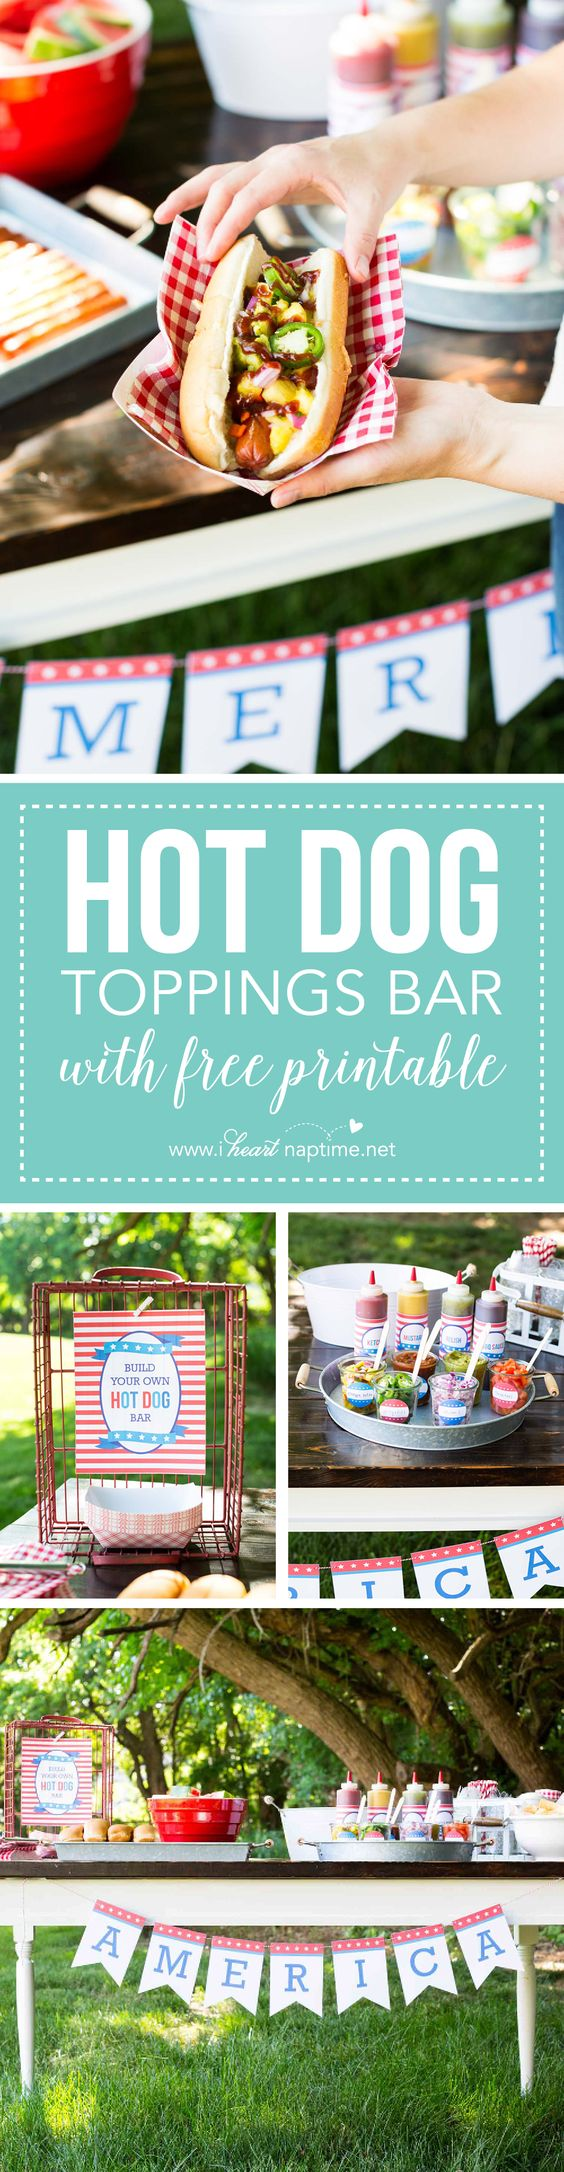 Hot Dog Toppings Bar for the 4th of July ...the perfect way to celebrate with friends and family. In partnership with #HebrewNational @hebrewnational